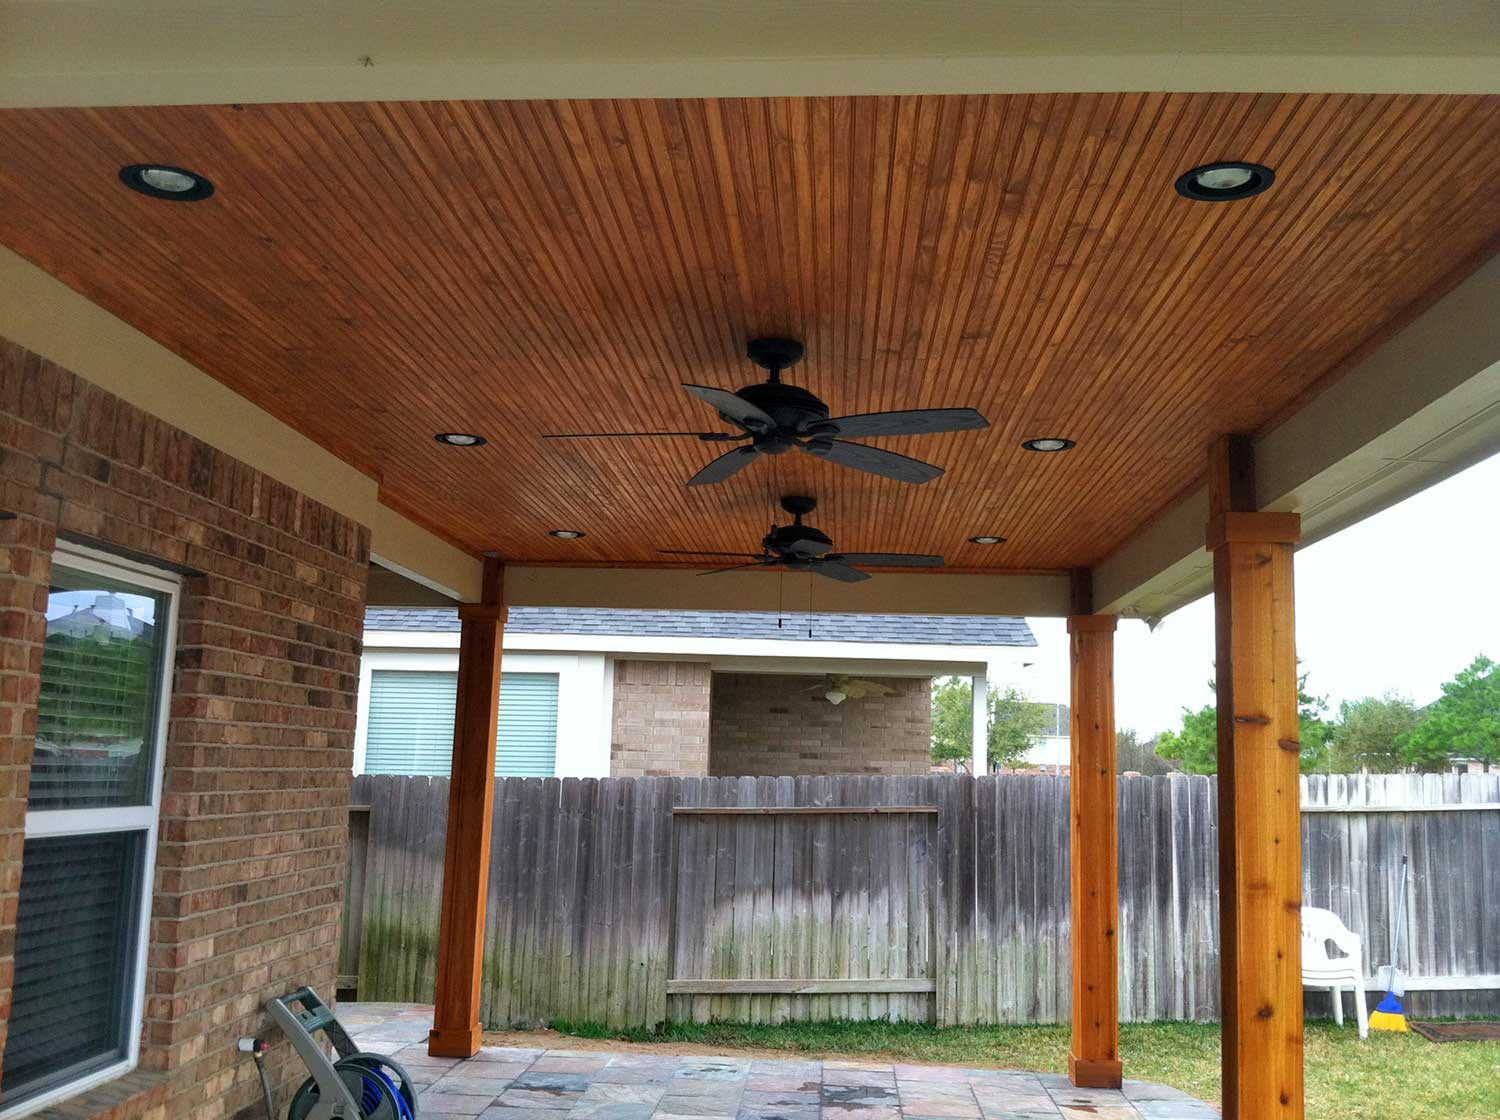 Patio Cover in Houston, TX - HHI Patio Covers on Patio Cover Ideas Wood id=62356